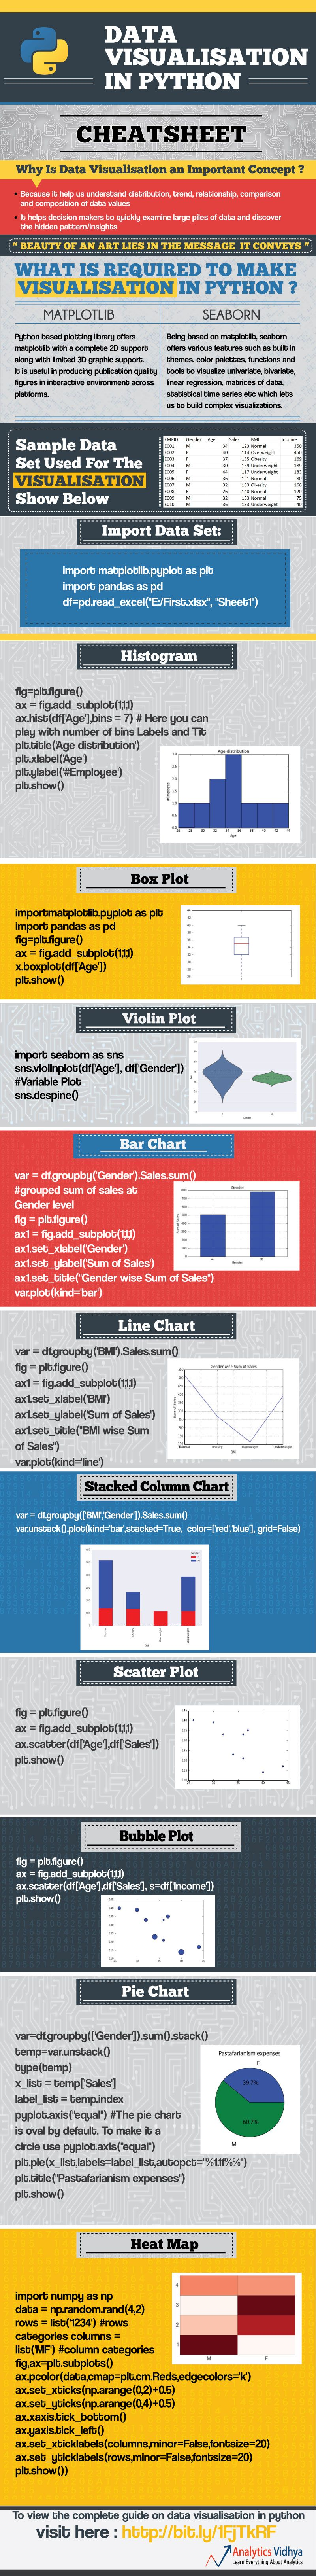 Cheat Sheet: Data Visualisation in Python – Data Science Central